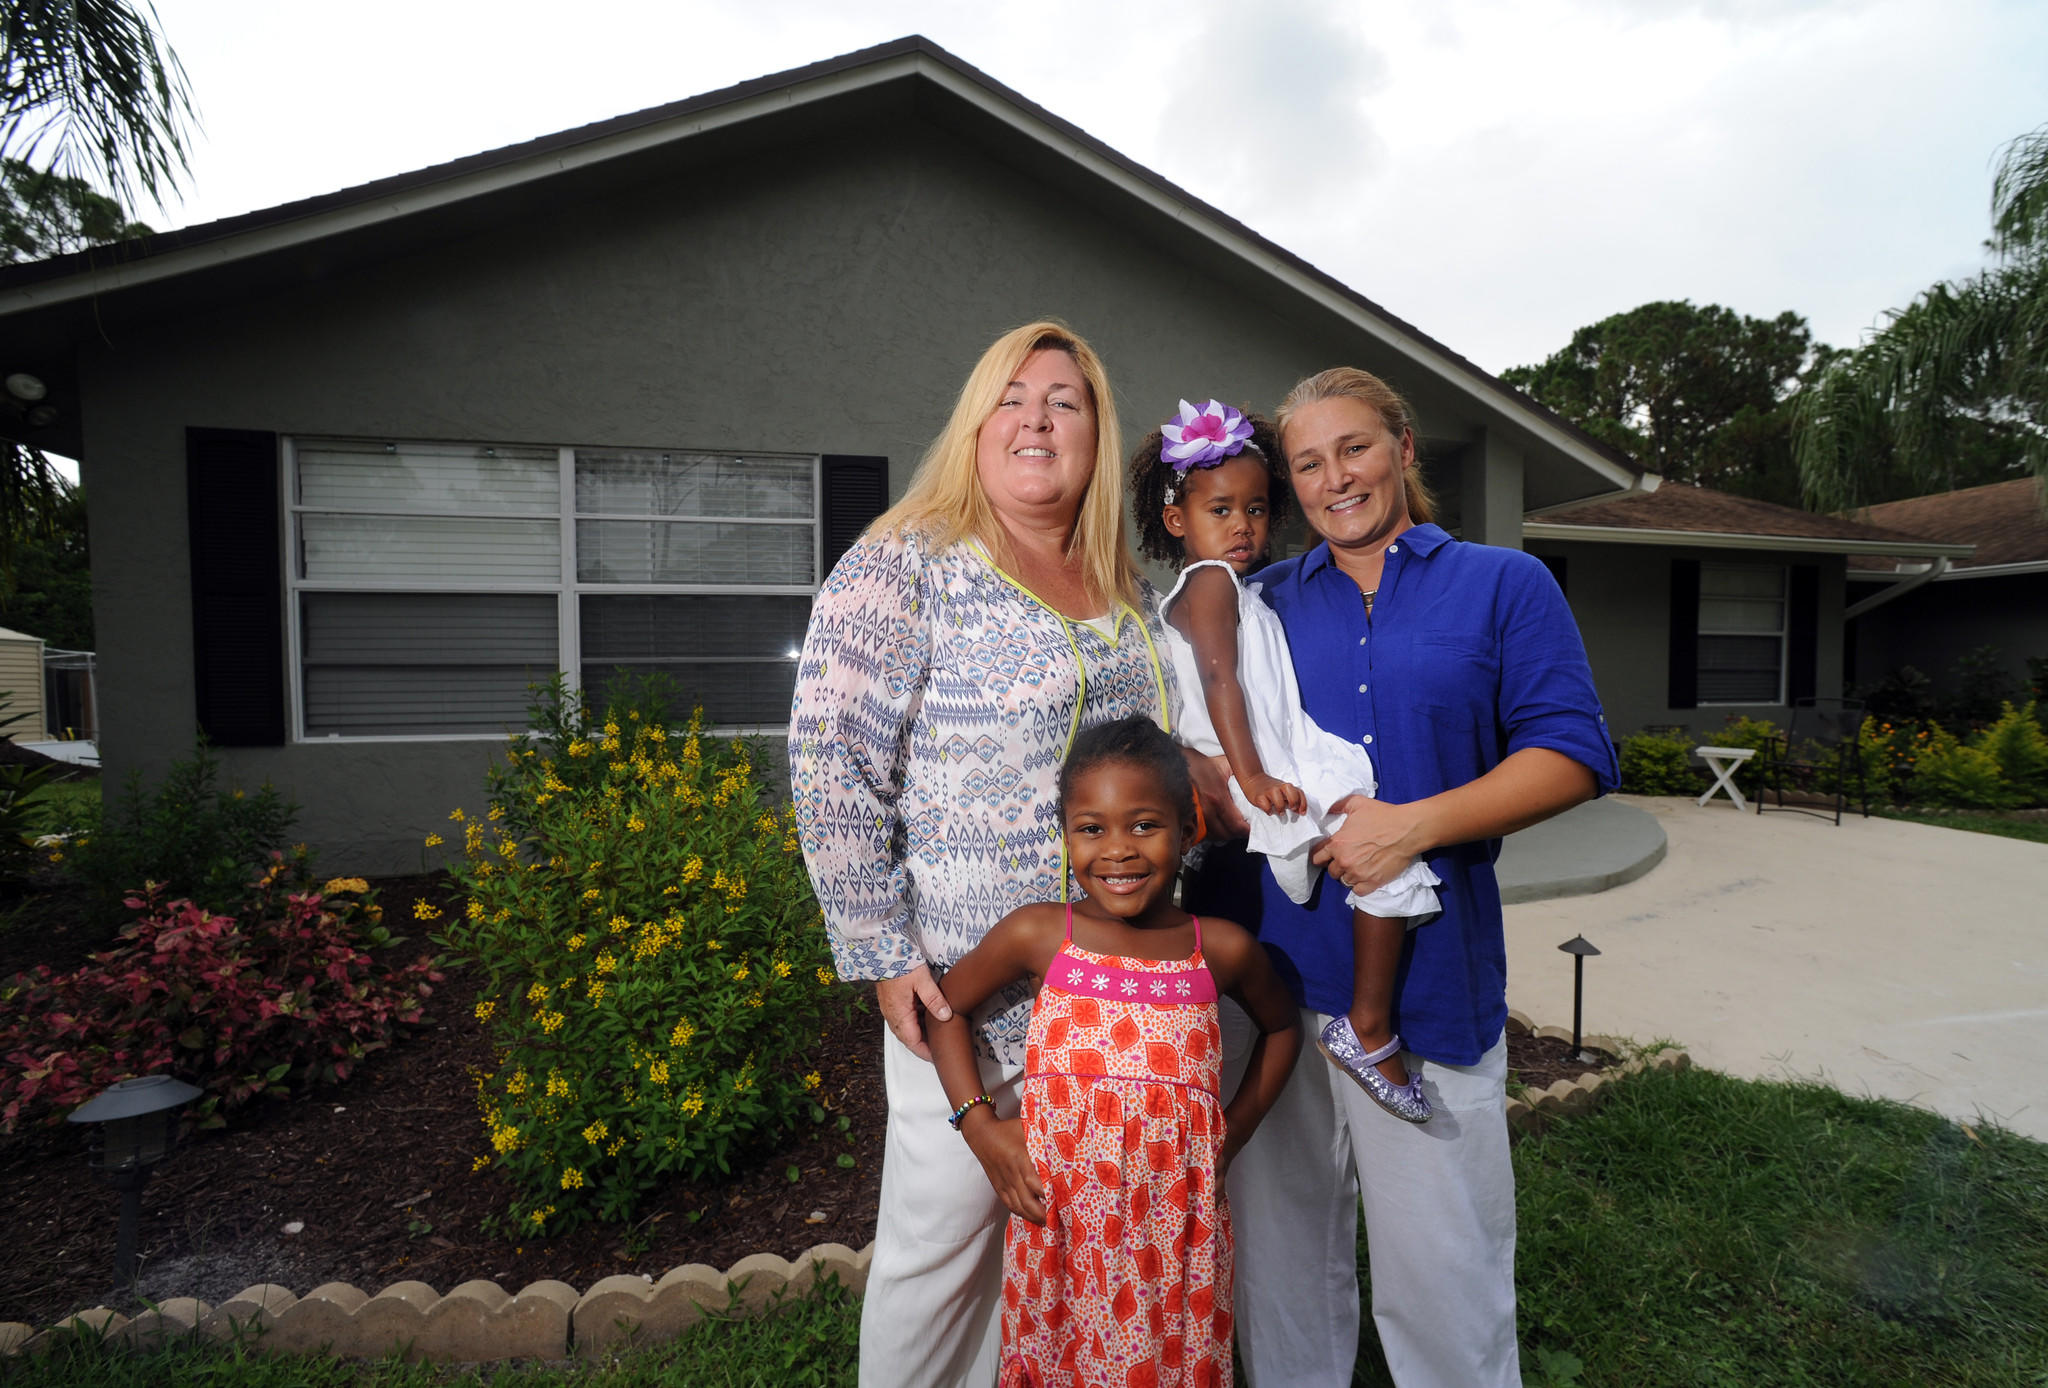 (left to right) Joyce Albu, Ava Grimsley (5 years old), Ella Grimsley (2 years old) and Sloan Grimsley. Joyce Albu and Sloan Grimsley are plaintiffs in a federal lawsuit dealing with same sex marriage. Grimsley is a firefighter and paramedic for the City of Palm Beach Gardens. They were married in New York in August 2011.(Jim Rassol, Sun Sentinel.)